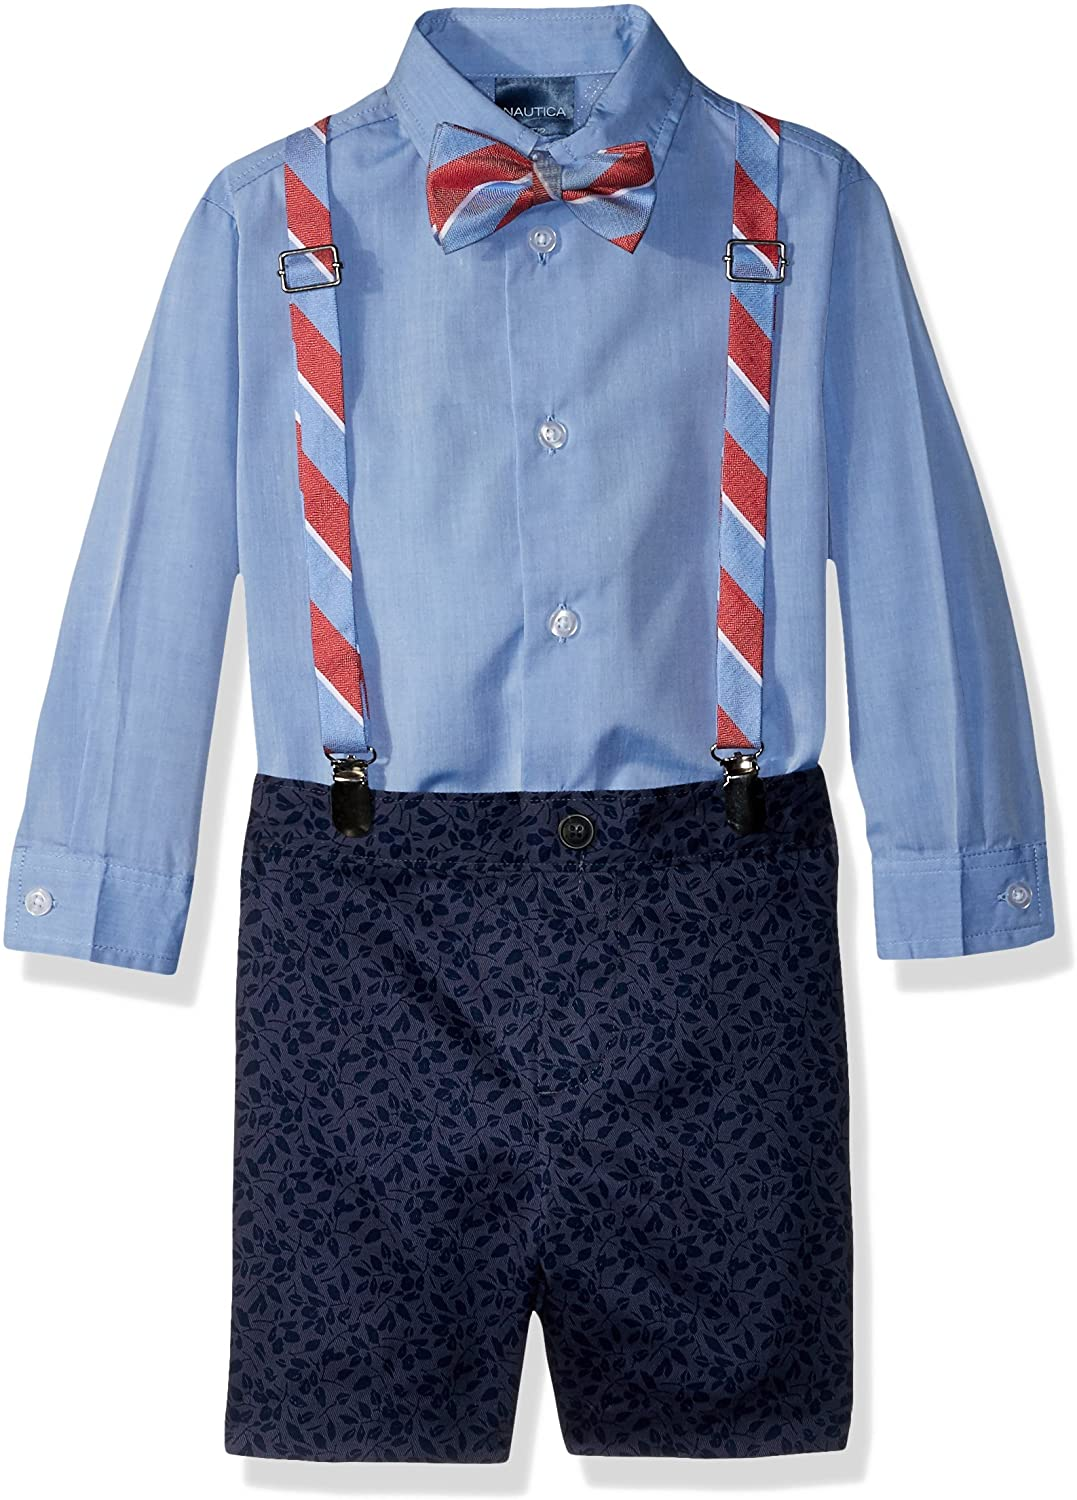 Nautica Boys' 4-Piece Set with Dress Shirt, Bow Tie, Suspenders, and Shorts